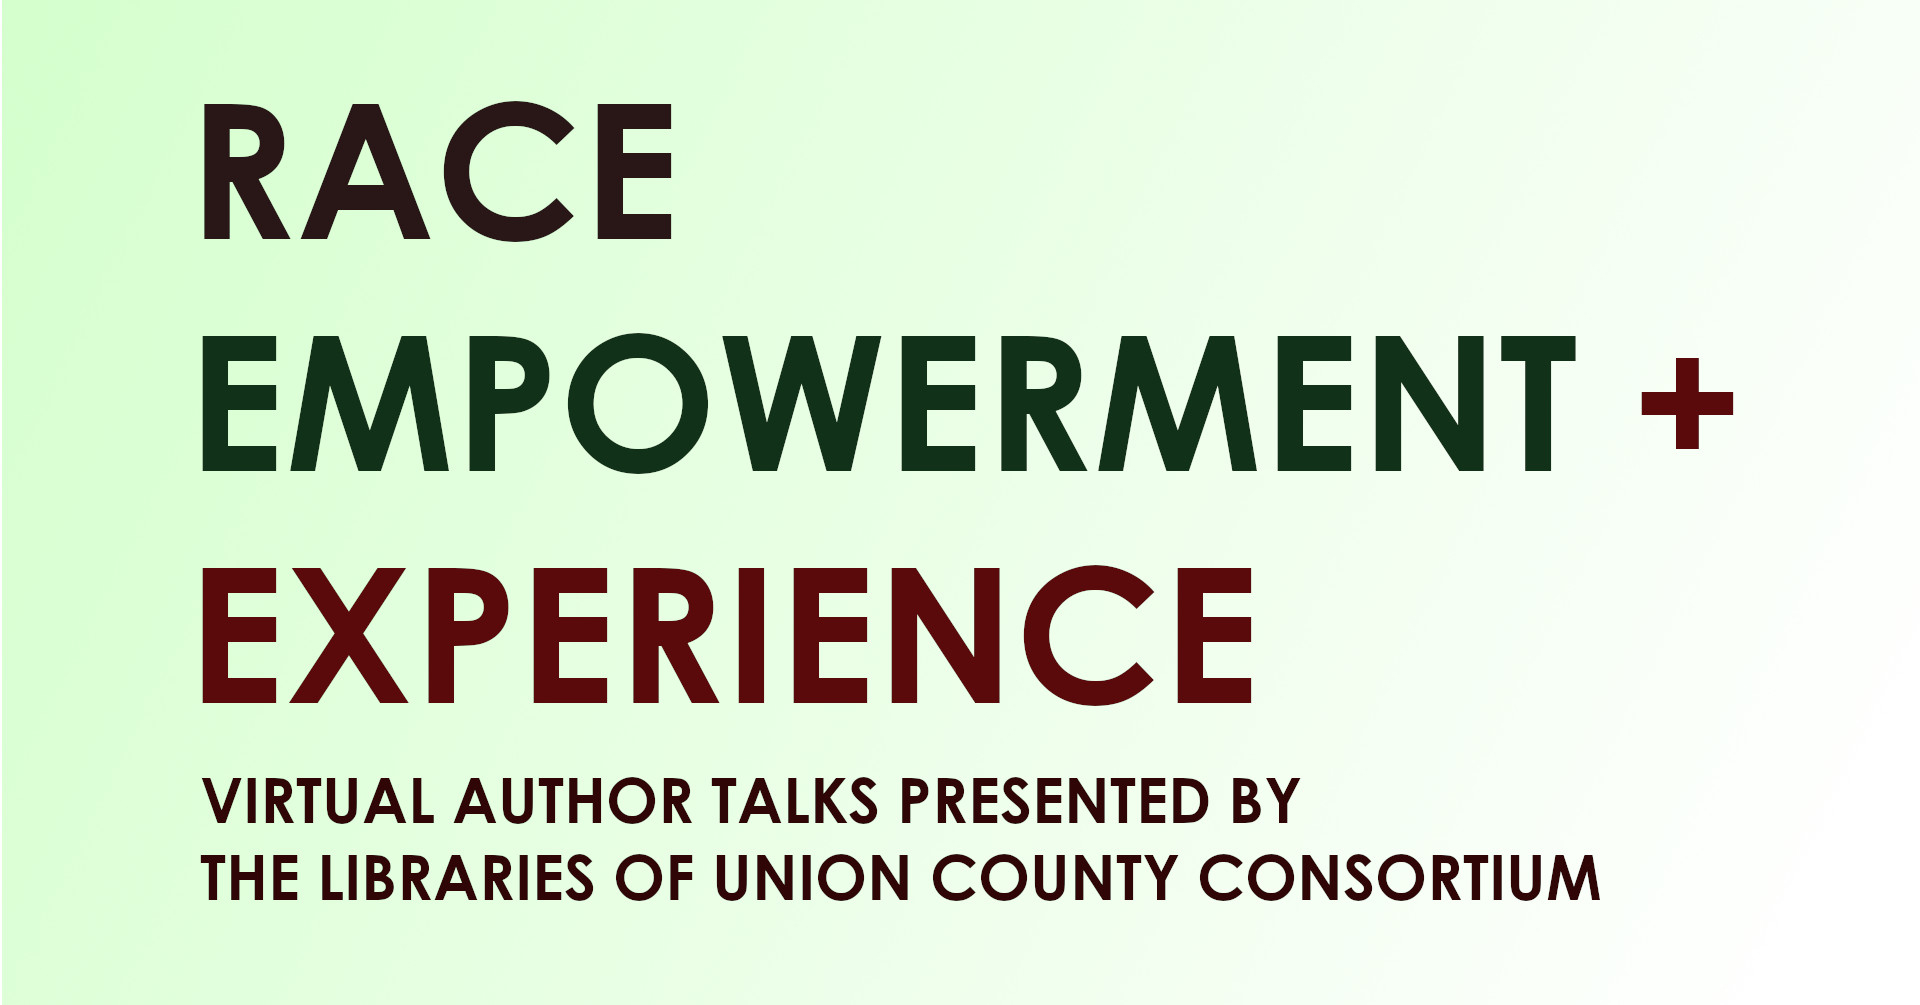 Race, Empowerment and Experience